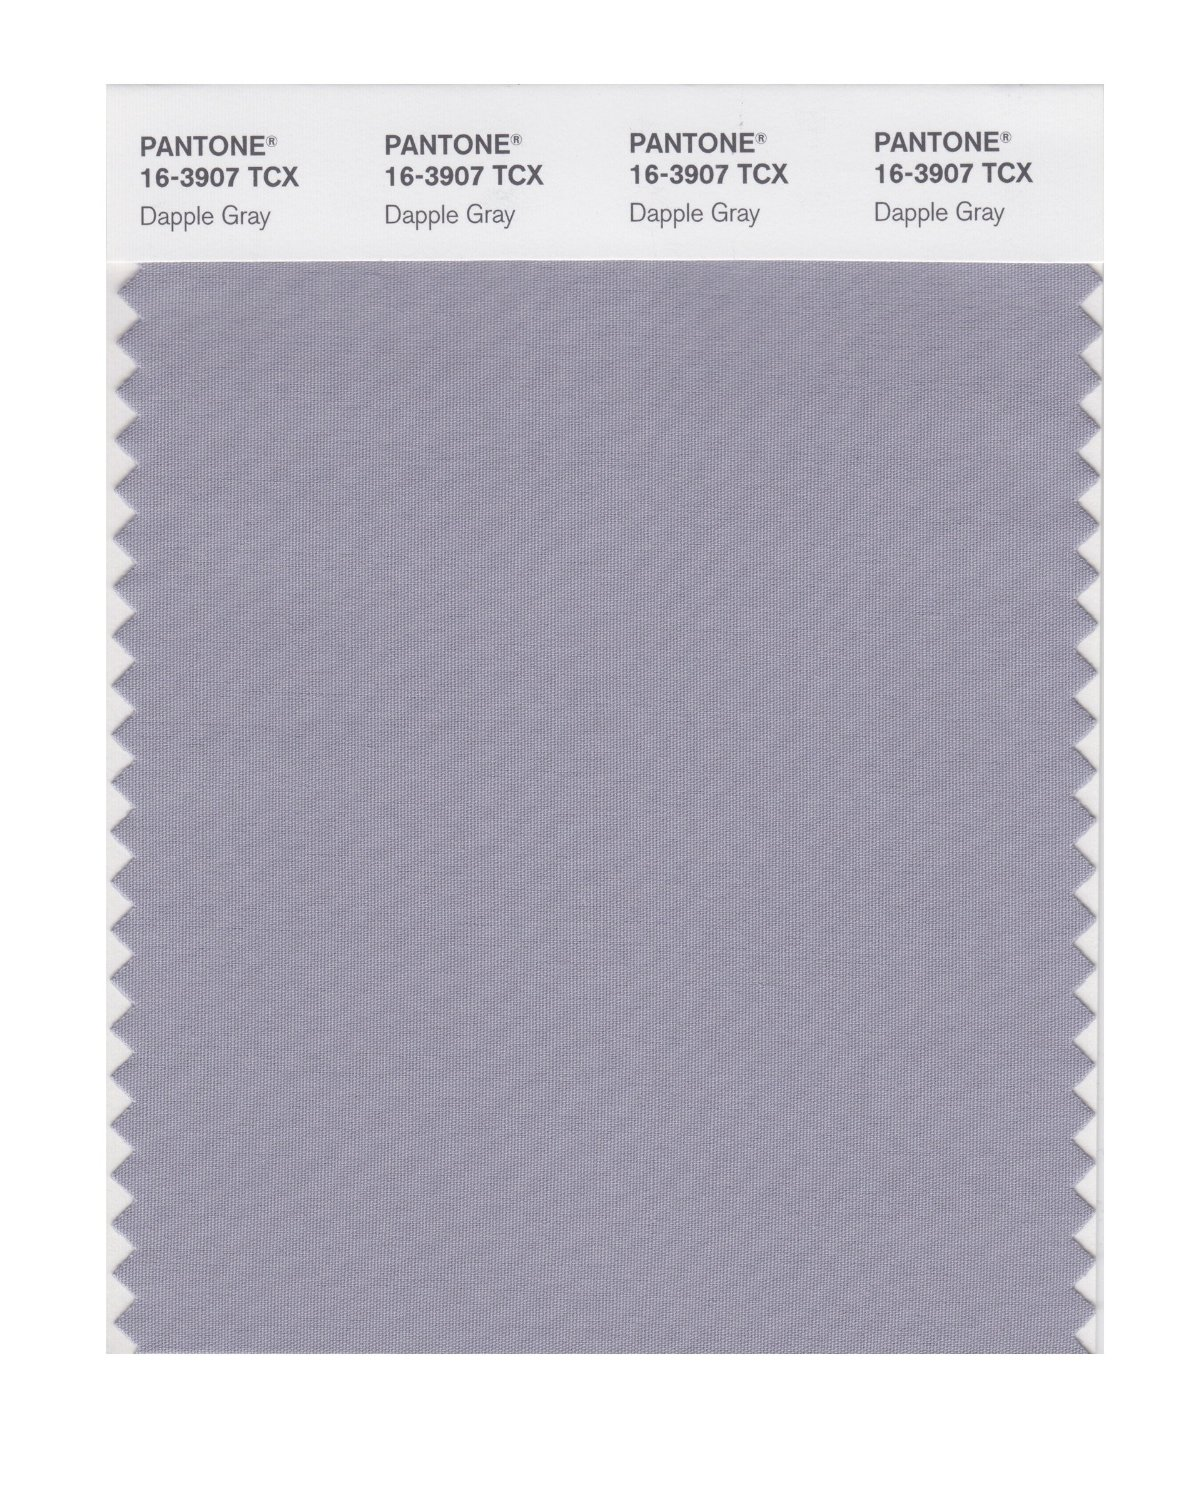 Pantone Smart Swatch 16-3907 Dapple Gray